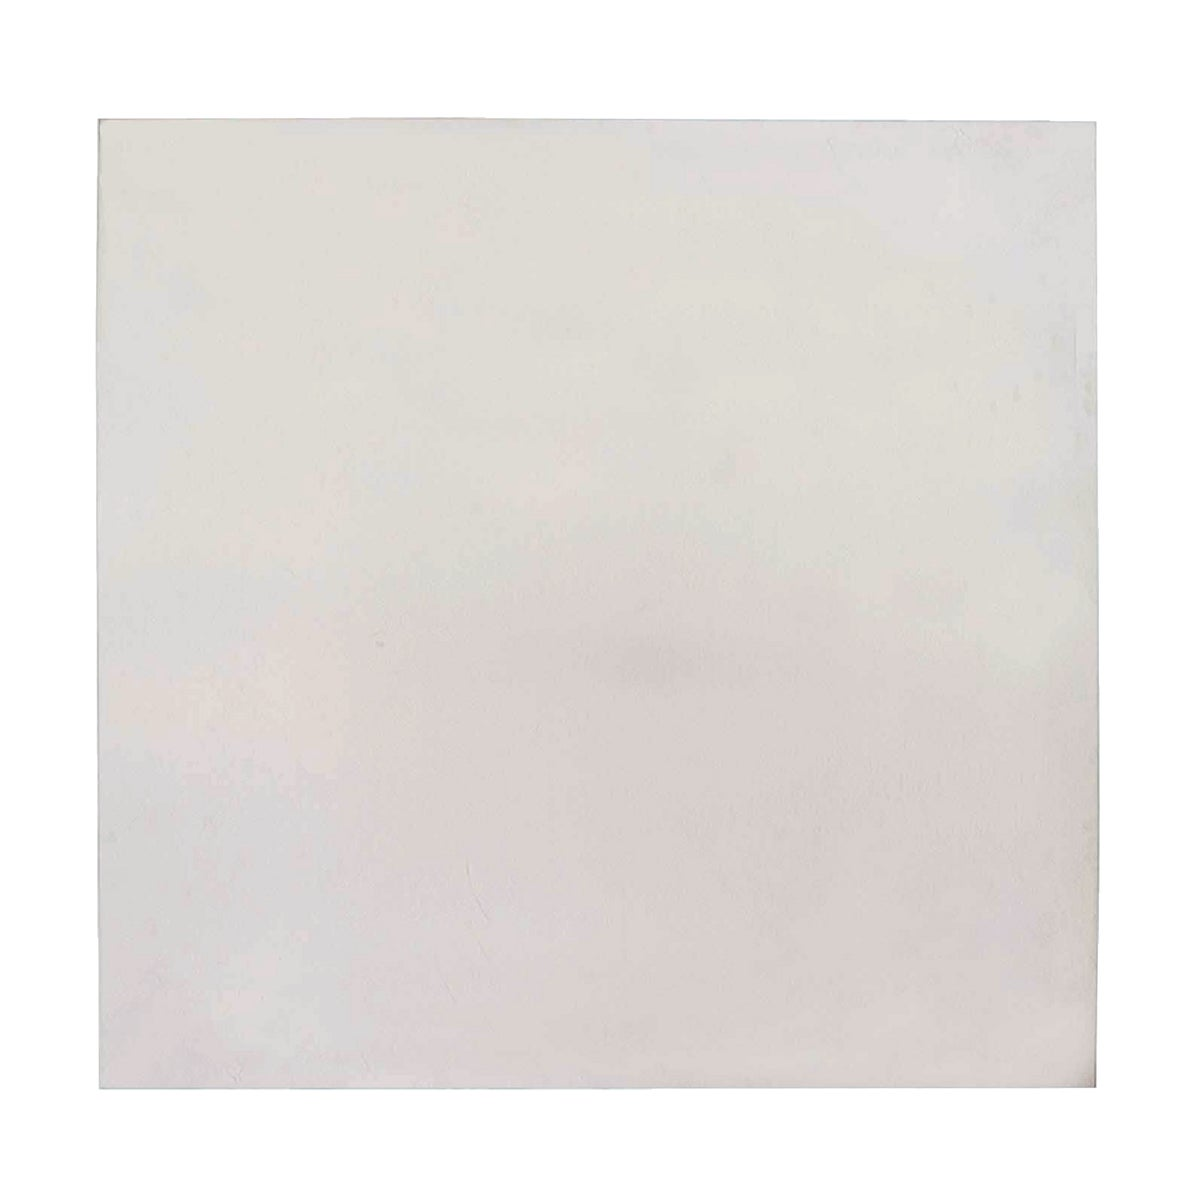 3X2 PLAIN ALUMINUM SHEET - 57794 by M D Building Prod